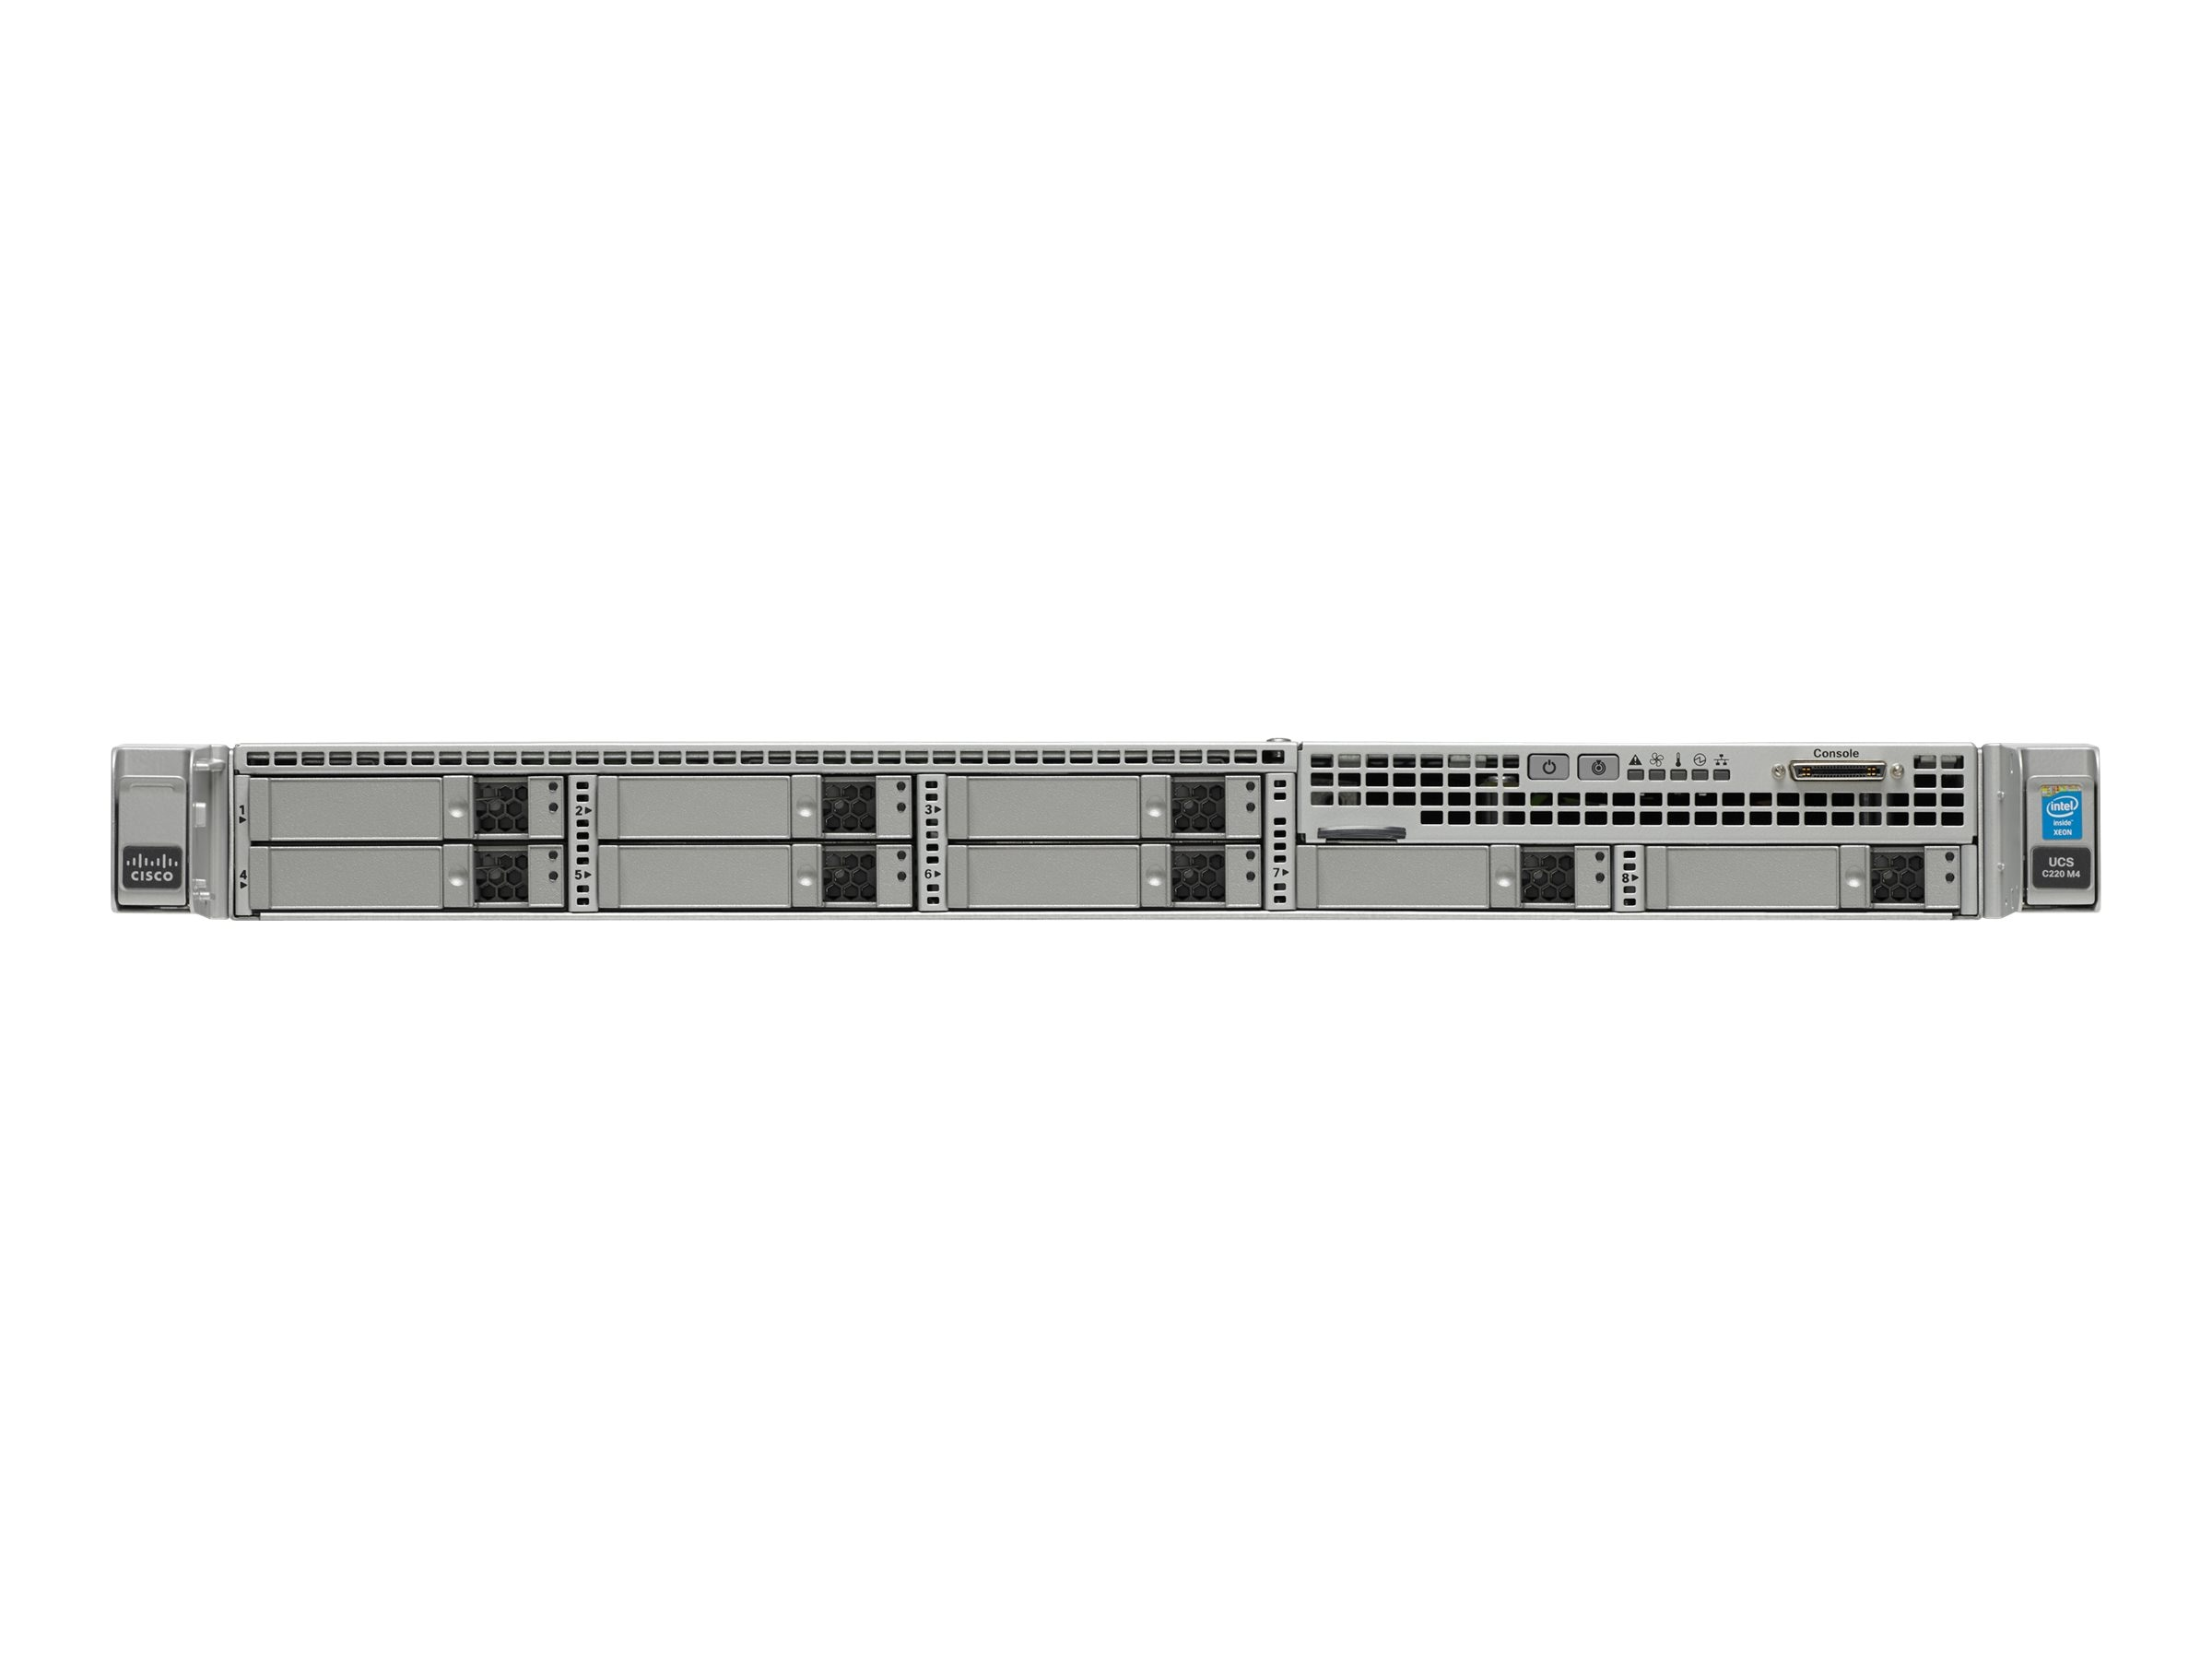 Cisco UCS-SP-C220M4-B-A1 Image 2